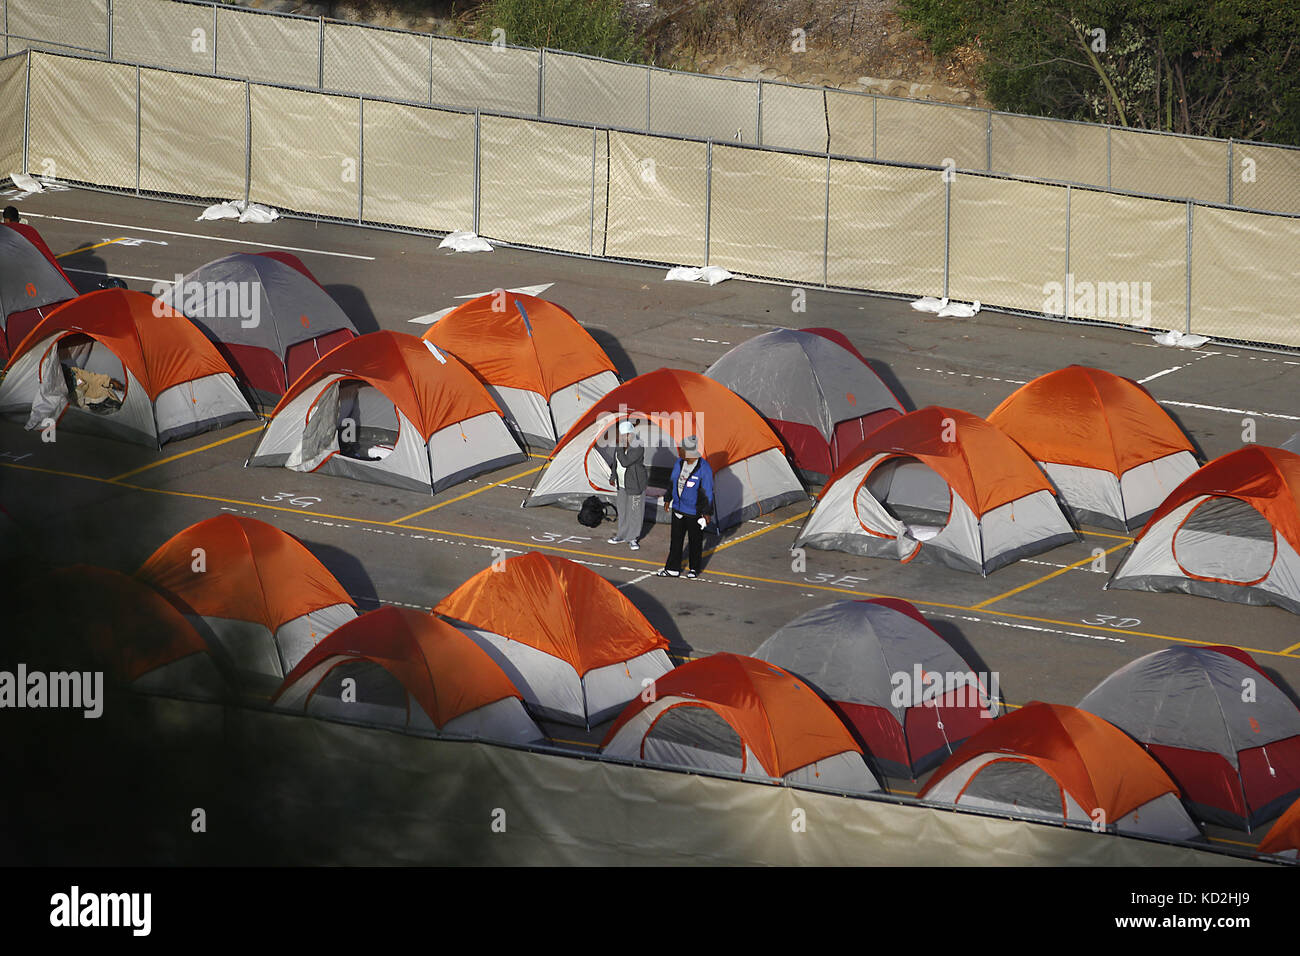 Tent City California Stockfotos & Tent City California Bilder - Alamy